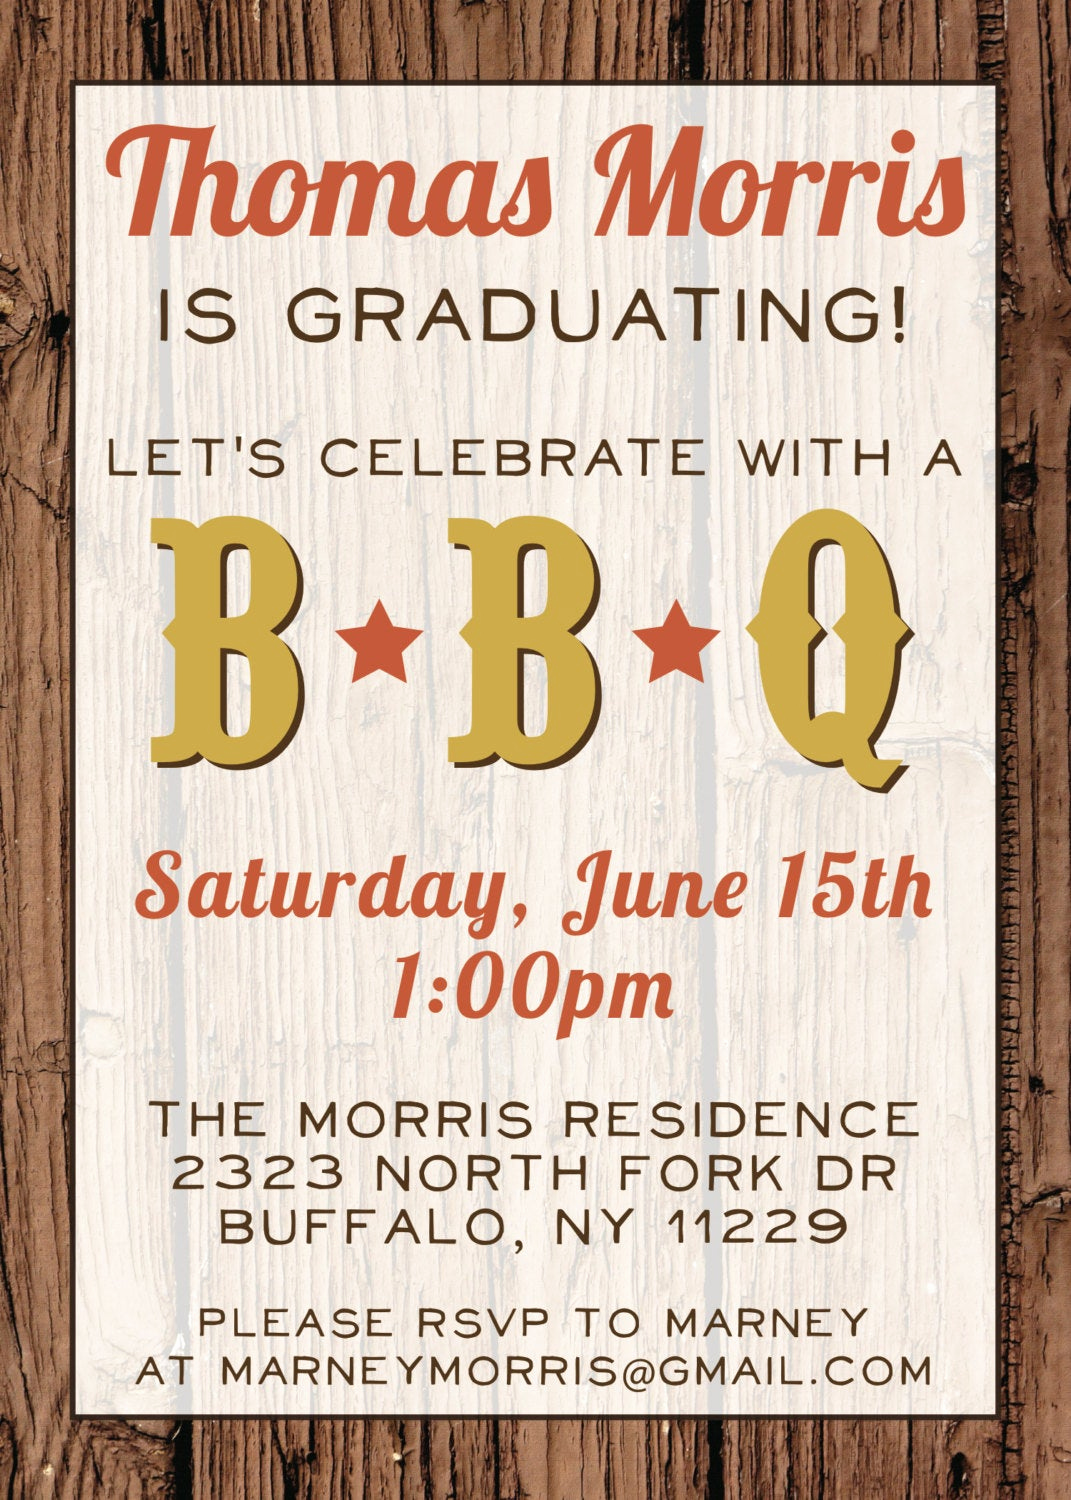 Graduation Announcement and Party Invitation Elegant Custom Bbq Graduation Party Invitation Digital File